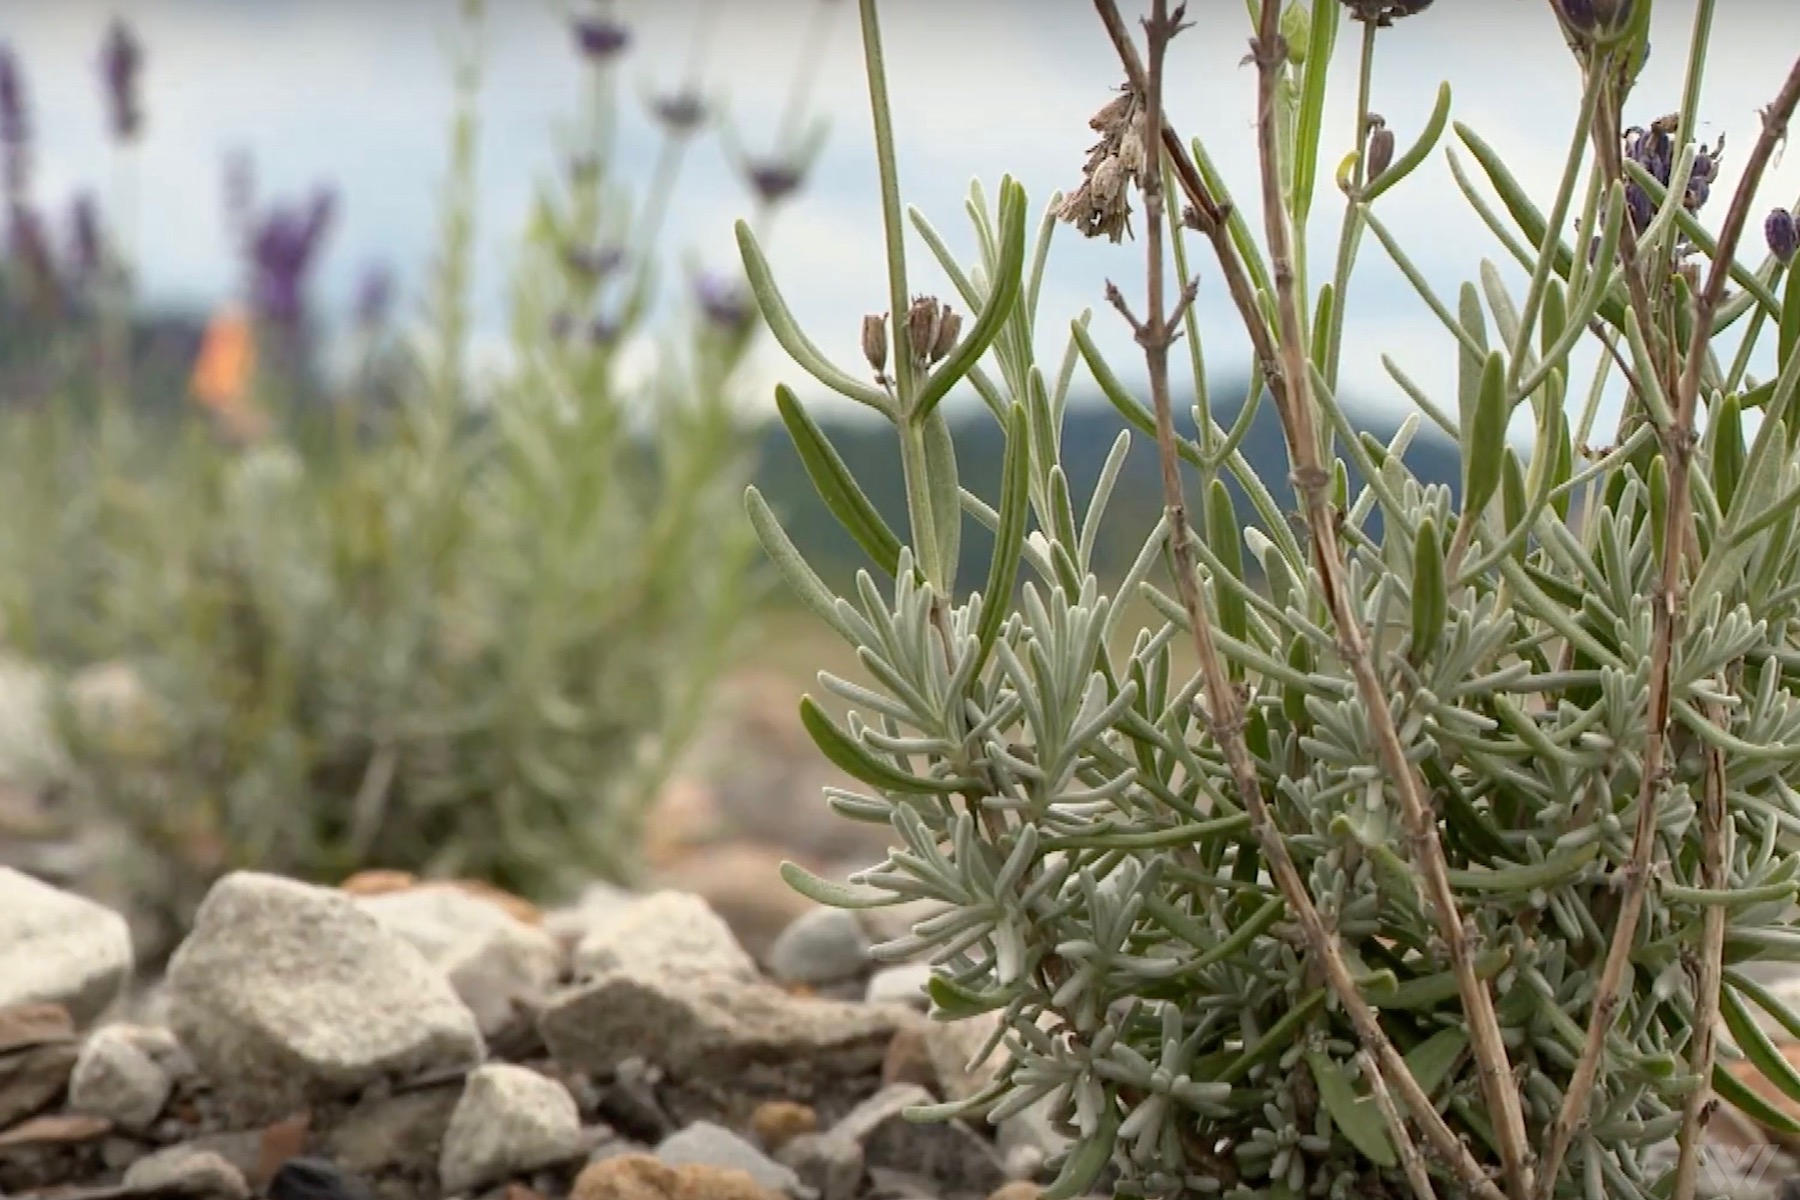 Lavender Farming Project Doesn't Go as Planned - The